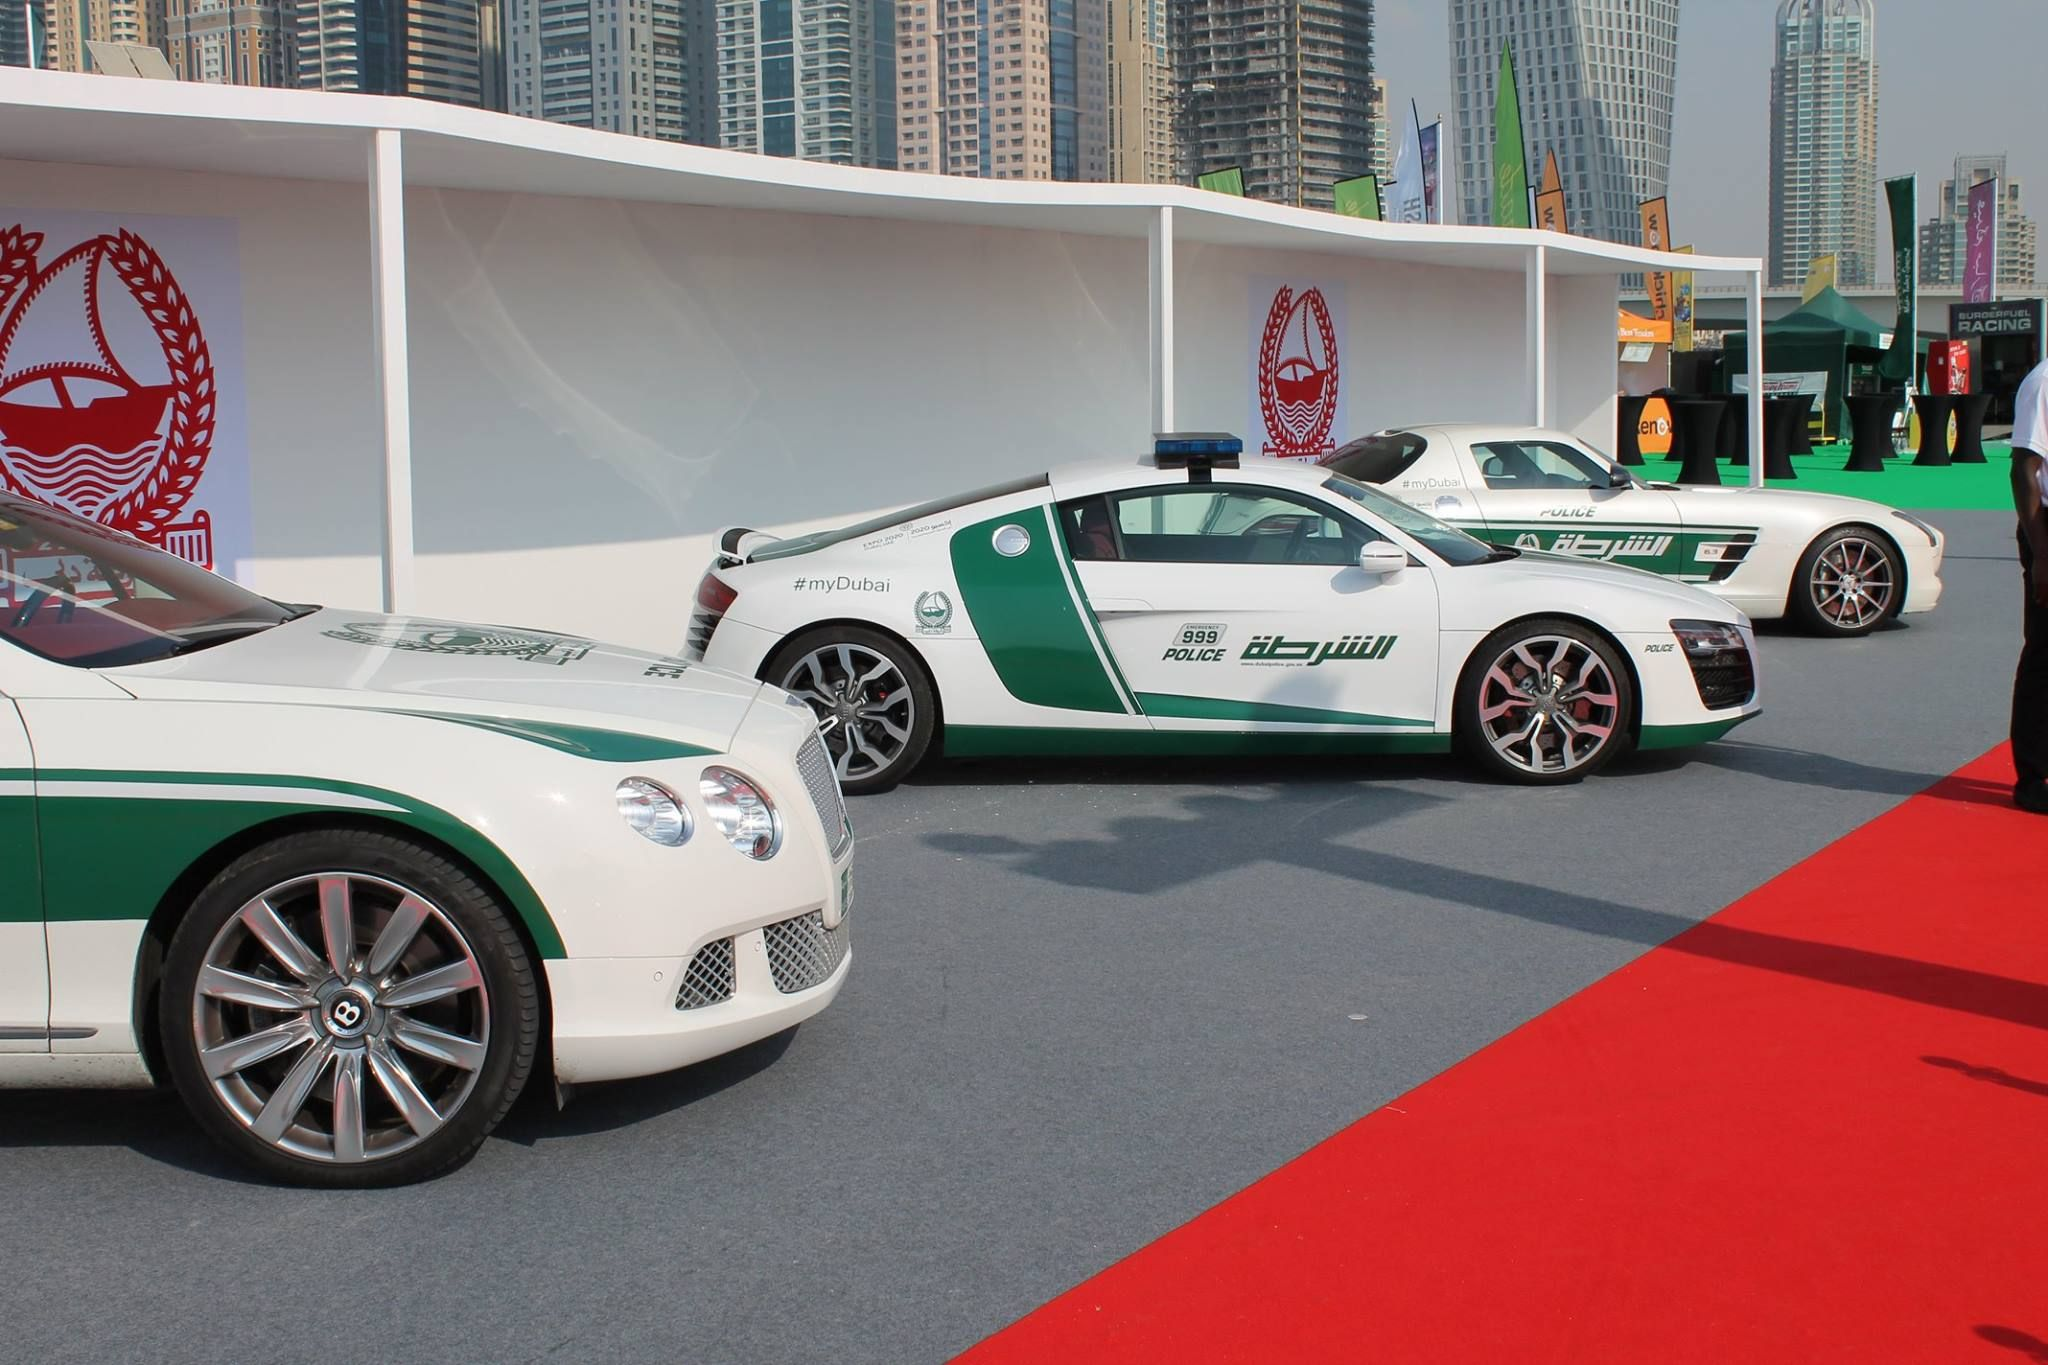 Big Love To Dubai Police Official Page At Big Boys Toys We Are Seriously Impressed By Their Supercar Fleet Of Police Toys For Boys Big Boy Toys Eid In Dubai